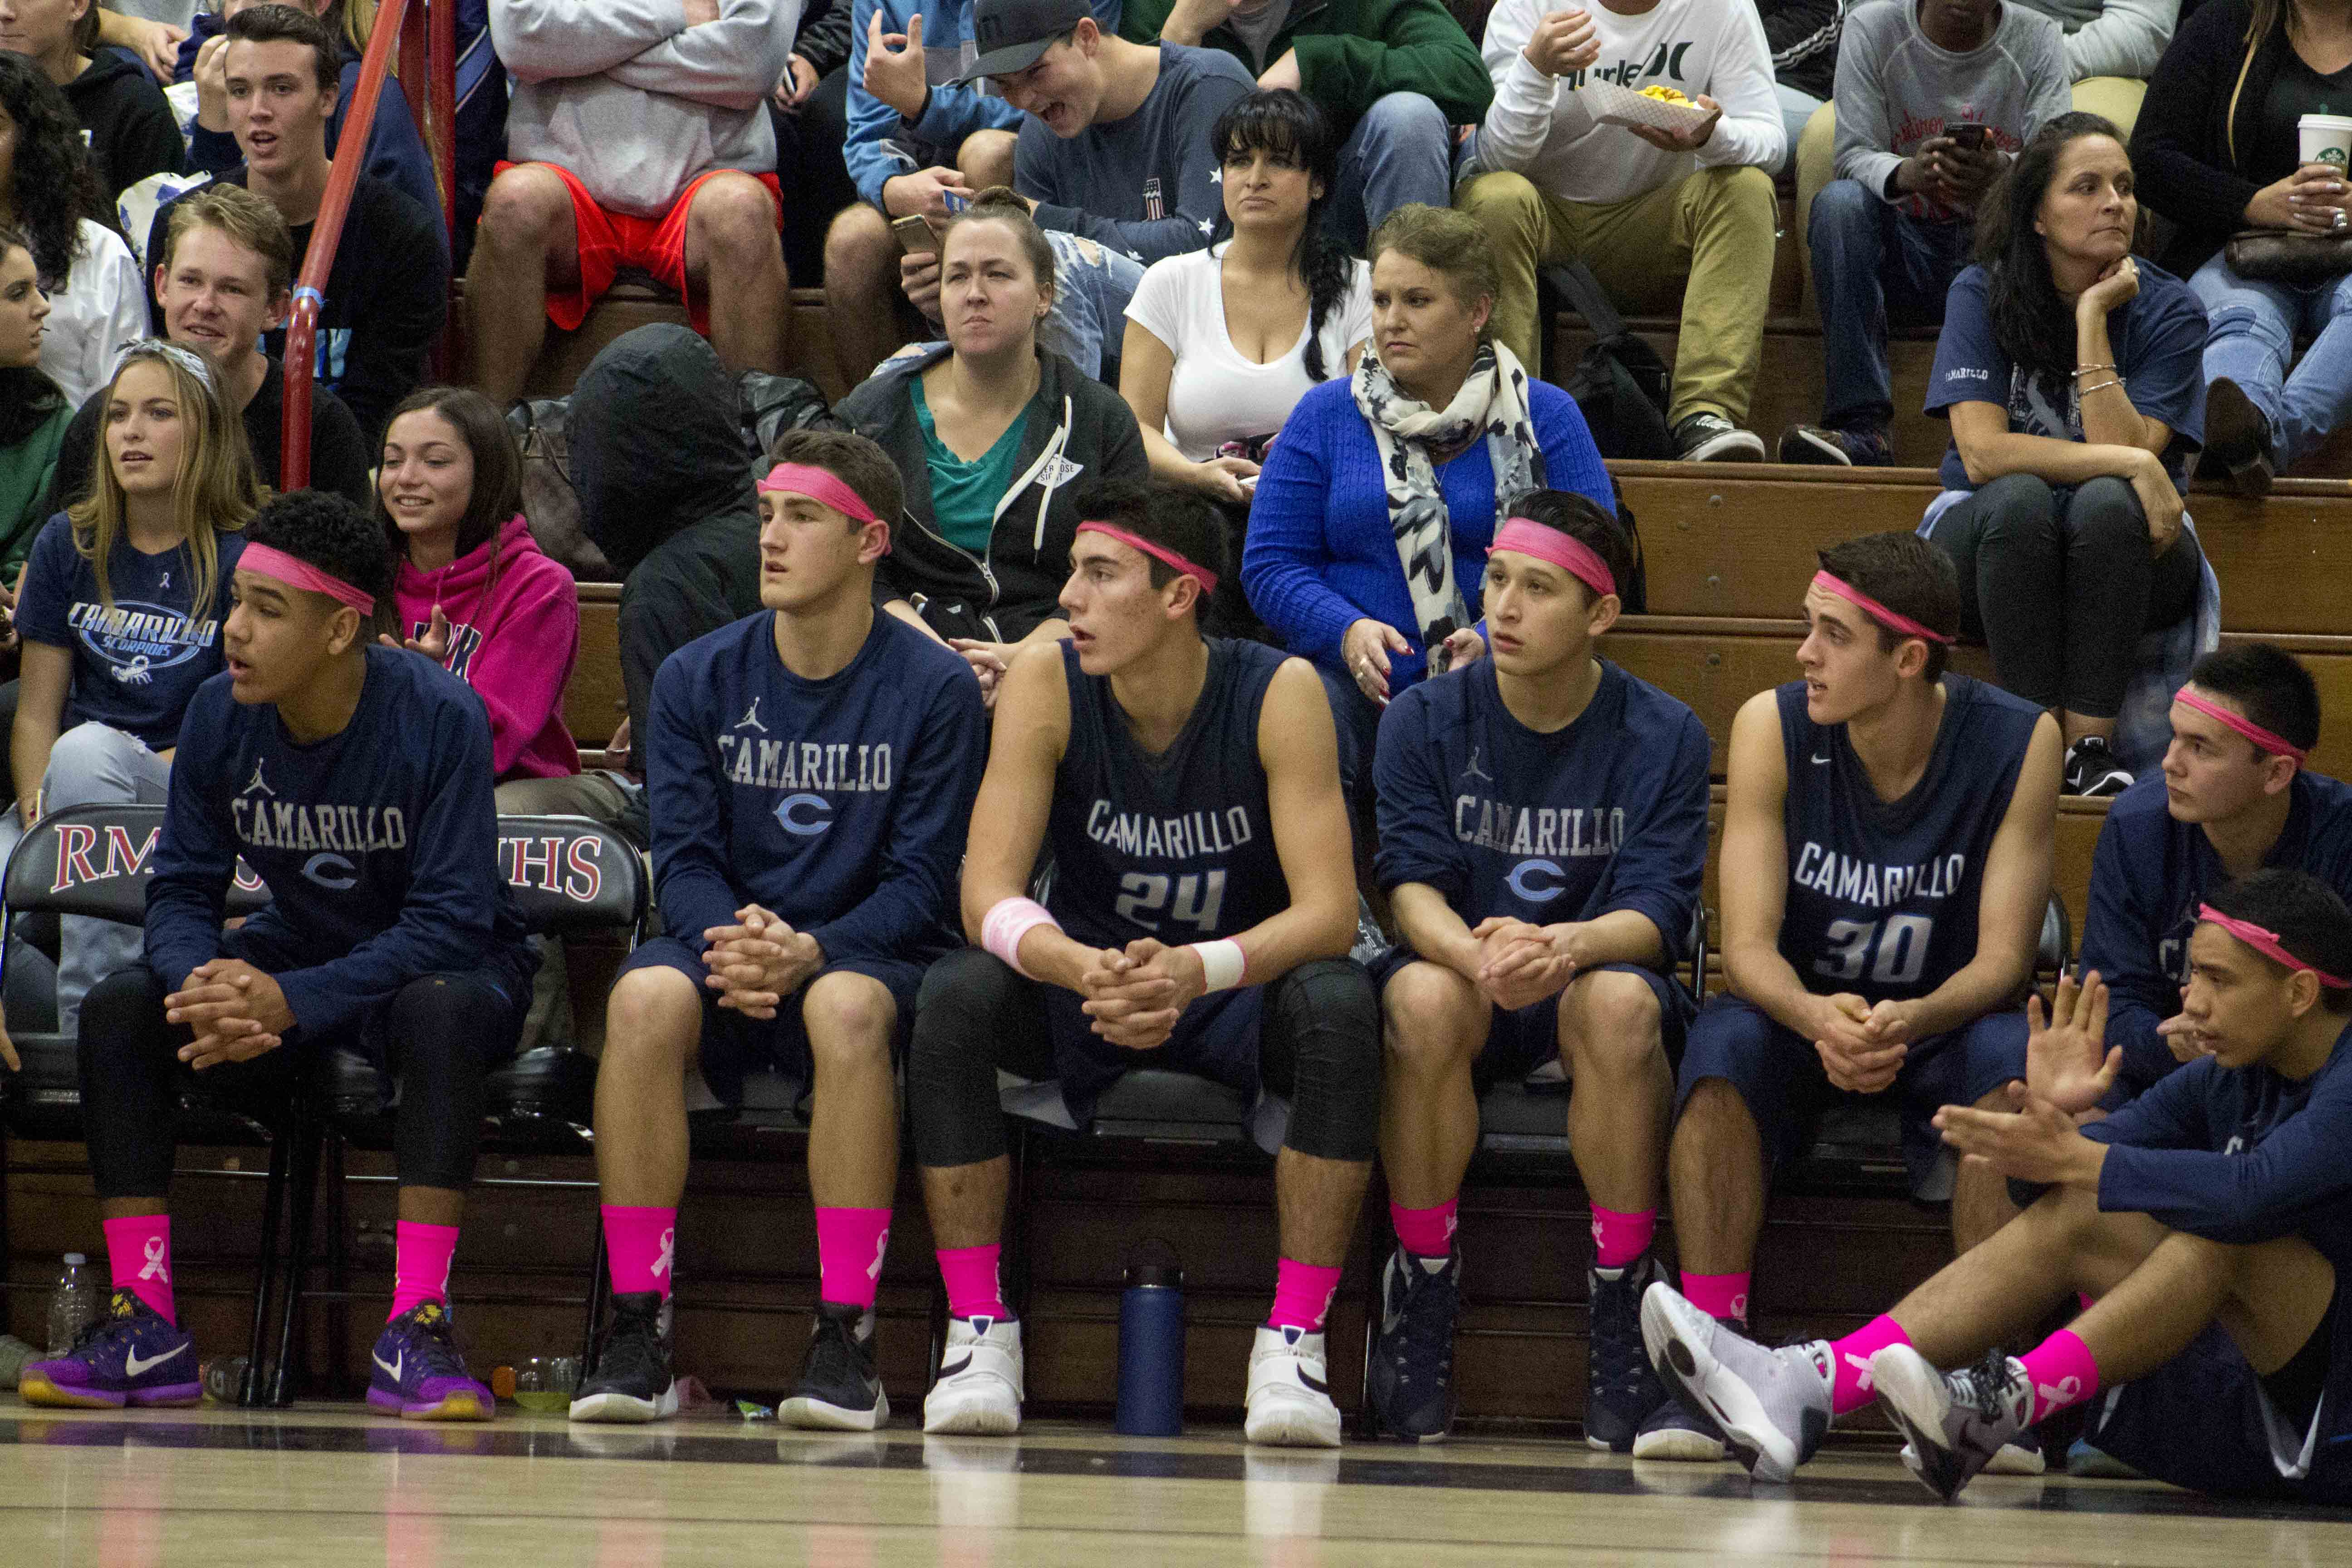 Boys varsity players watches on from the bench.